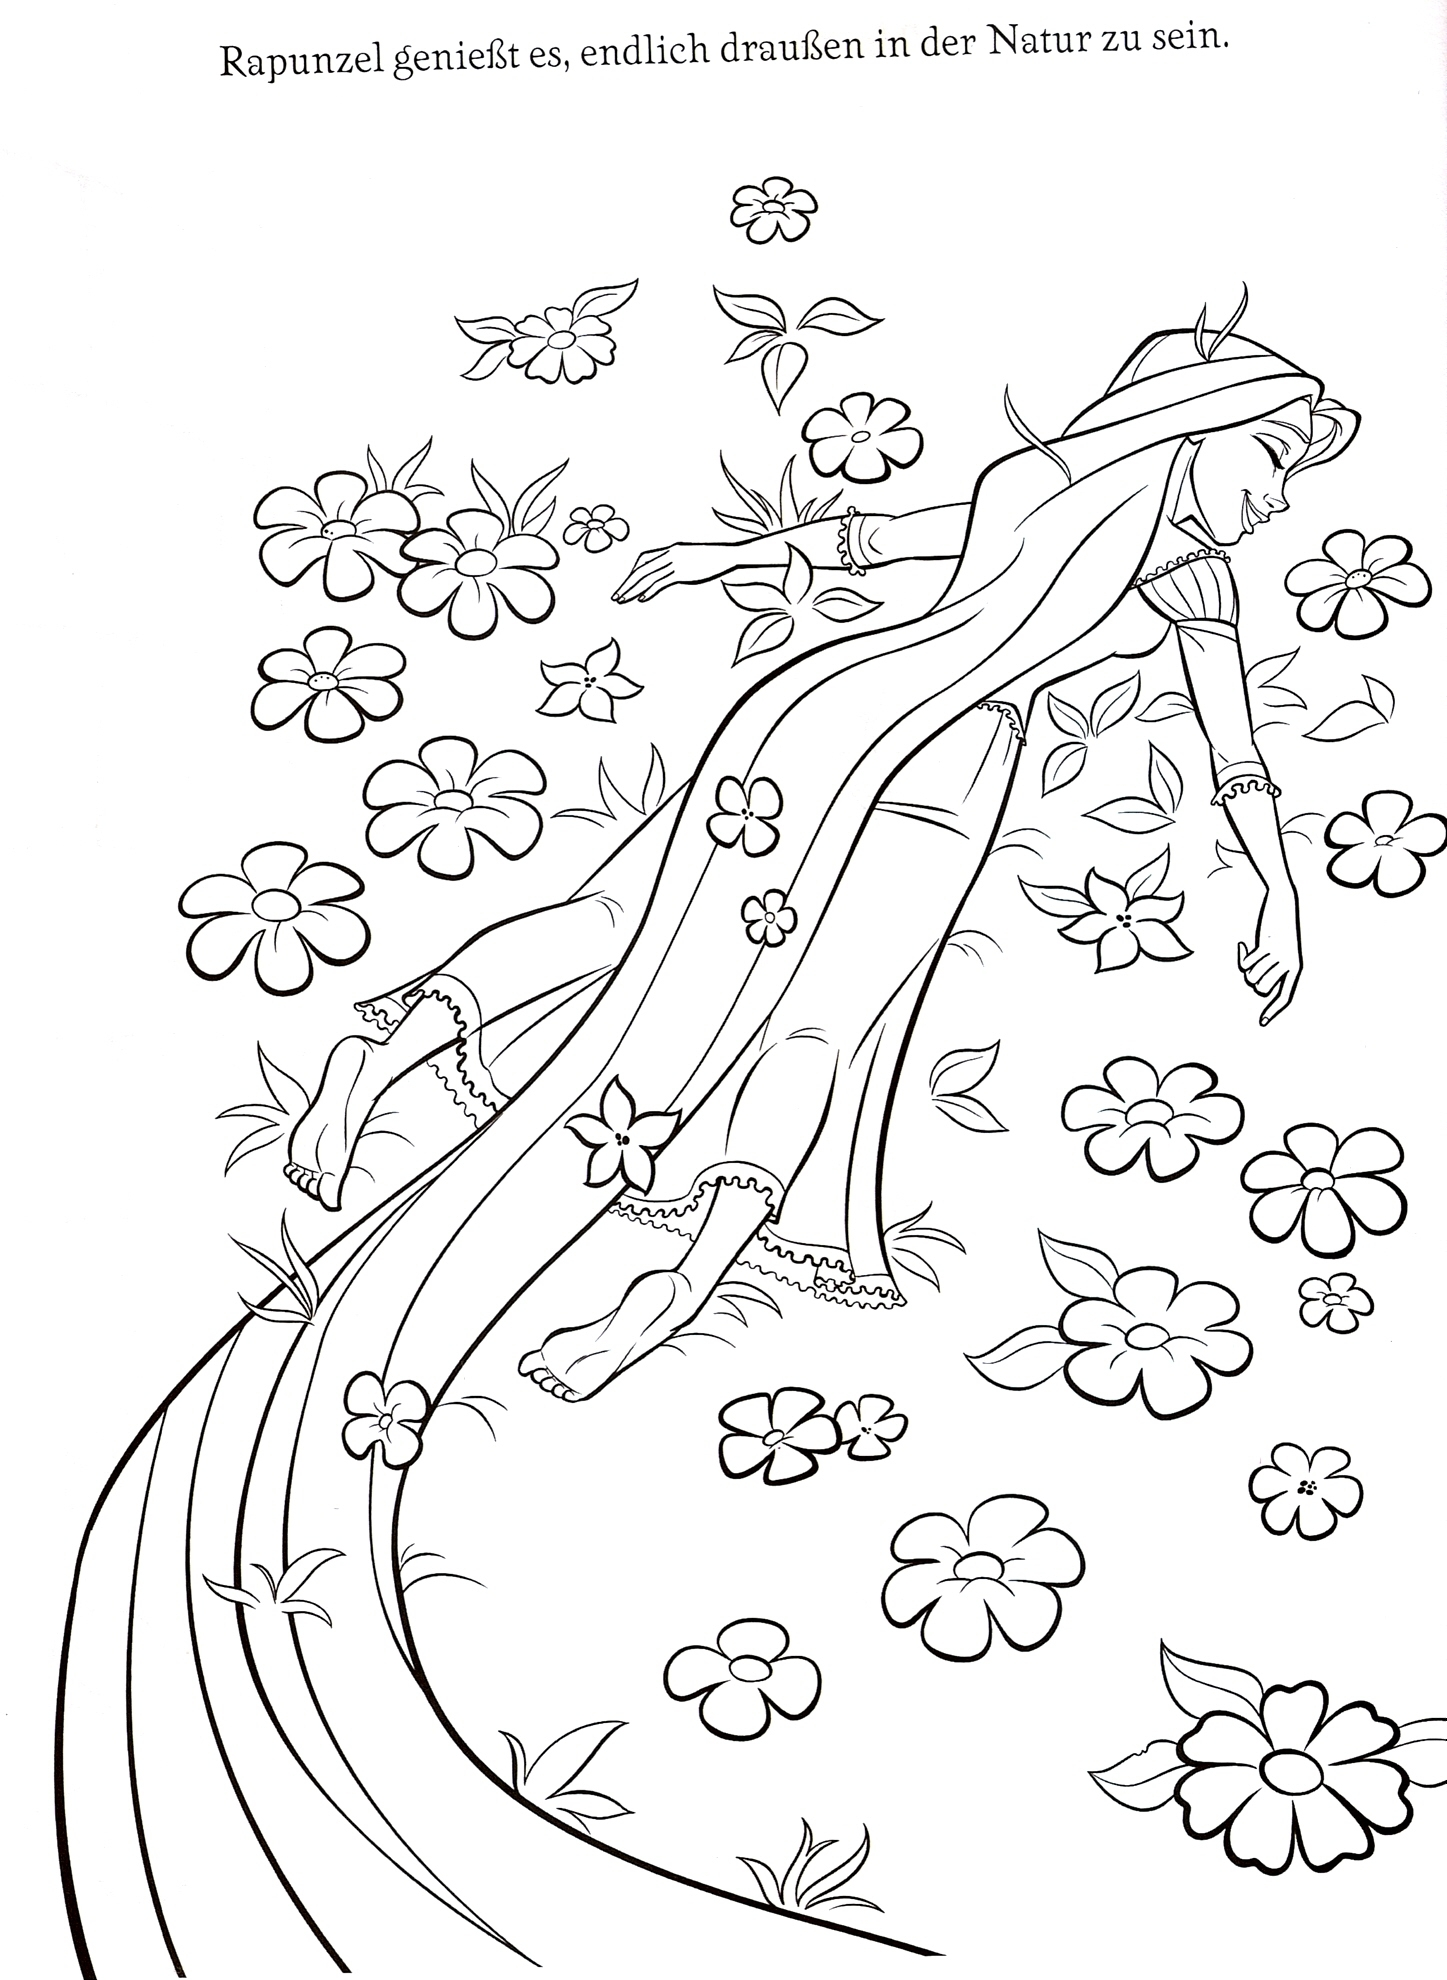 Fairy Tale Characters Anime Coloring Coloring Pages